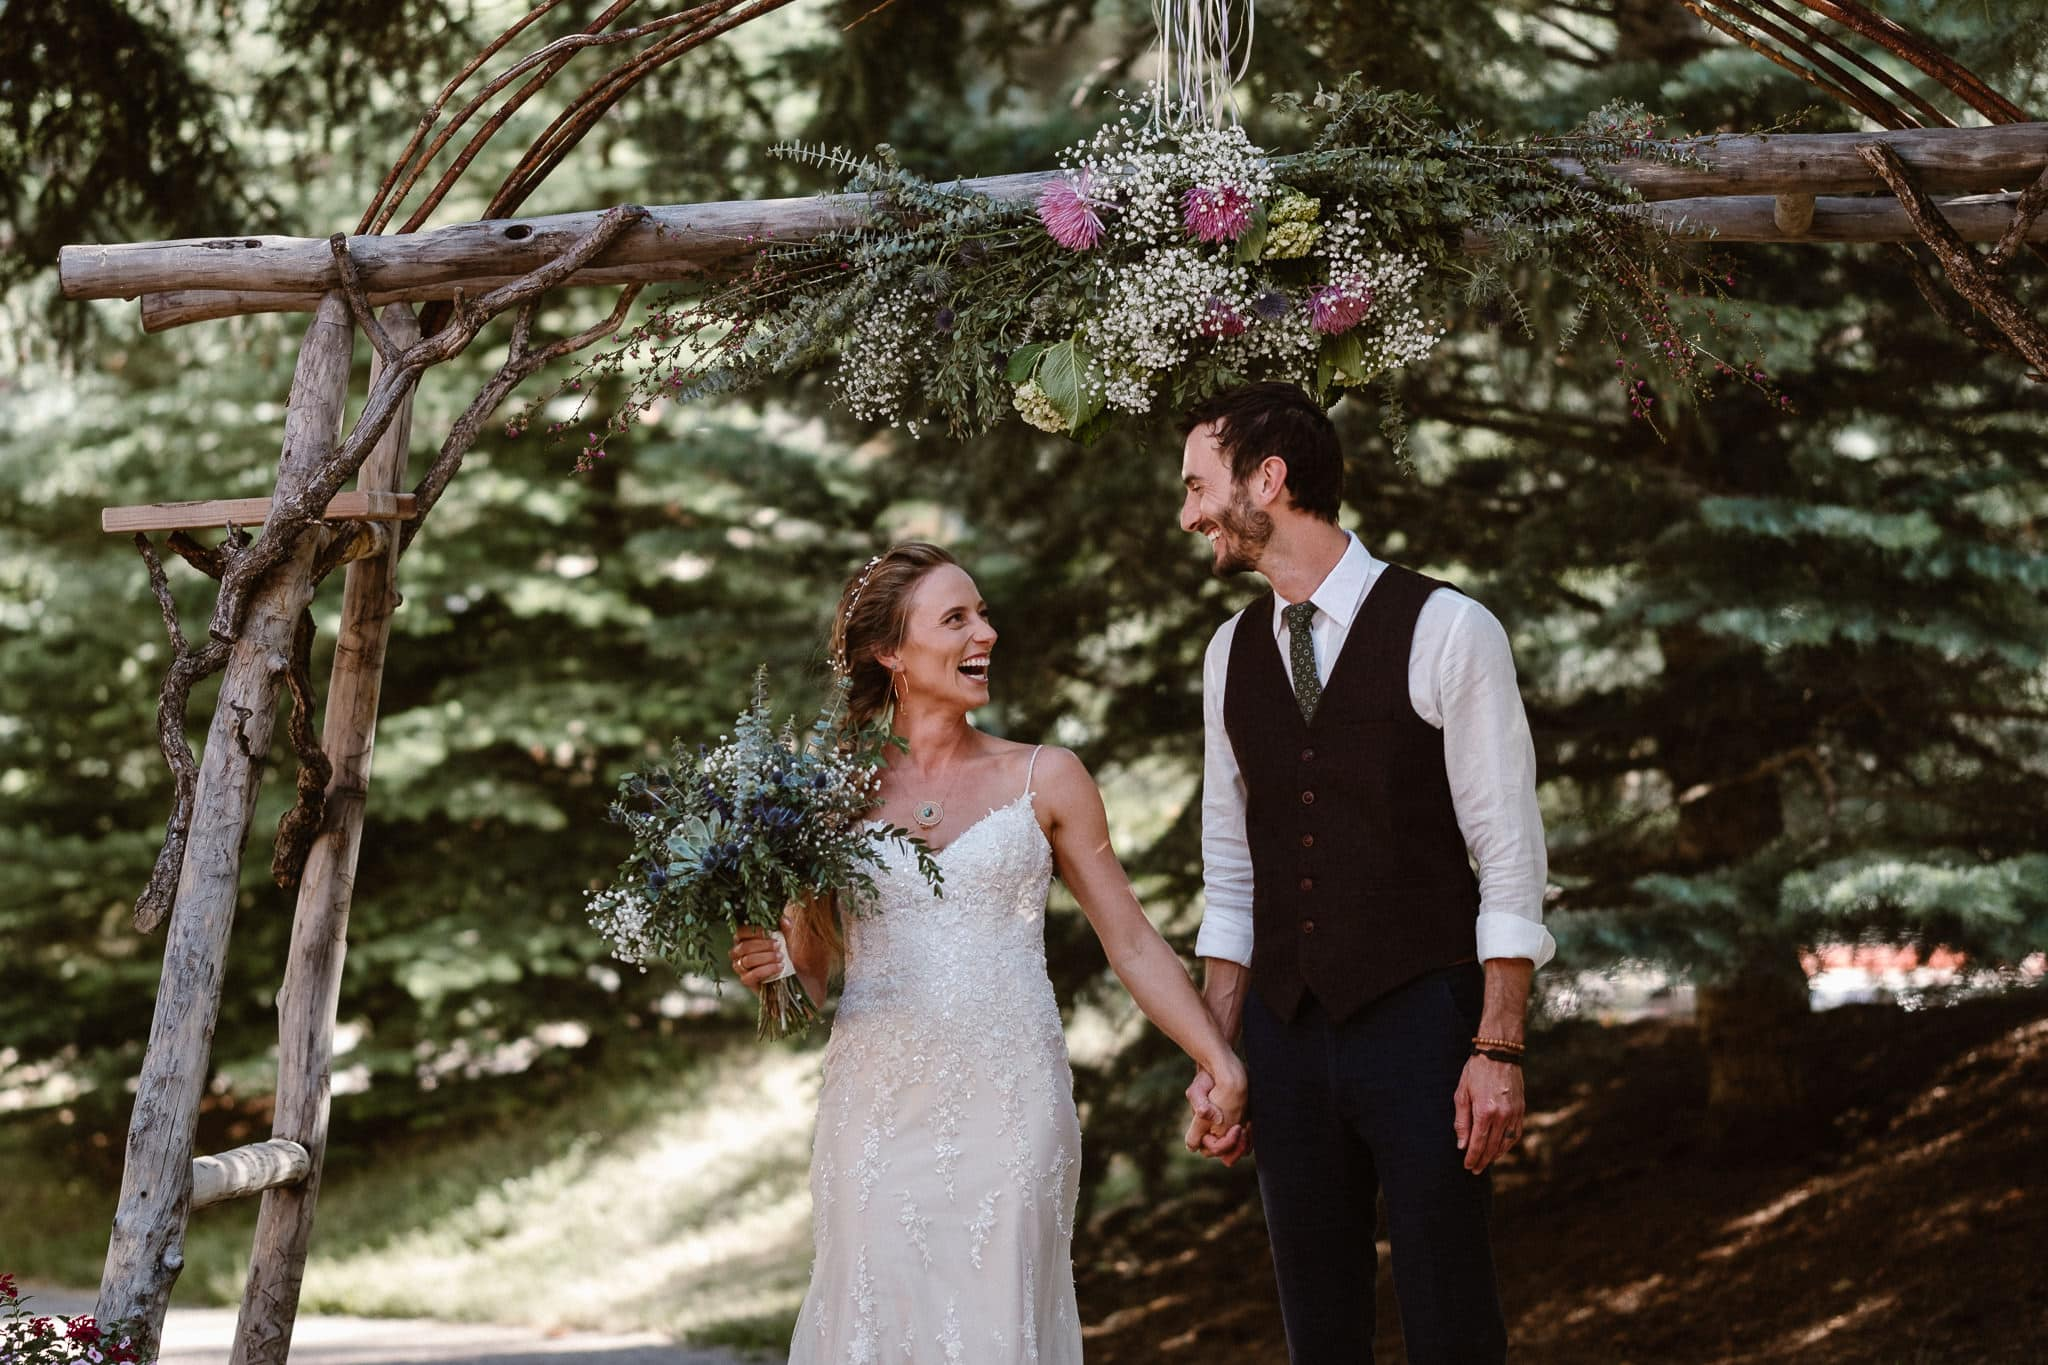 Redstone Inn wedding photographer, Carbondale wedding photographer, Colorado intimate wedding photographer, wedding ceremony bride and groom announcement